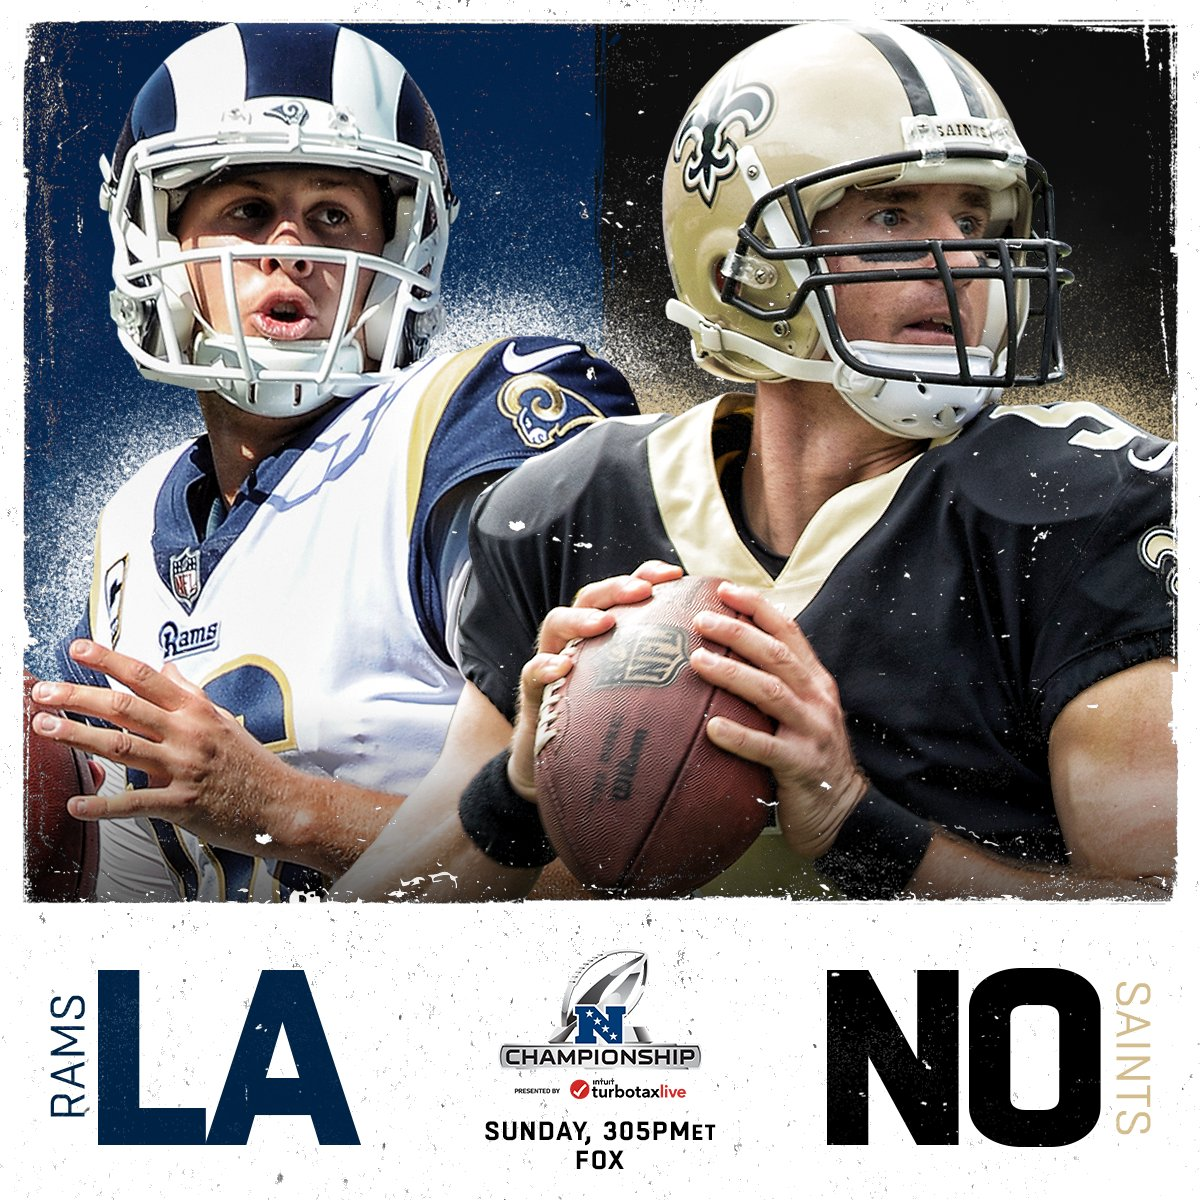 NFL's photo on #nflplayoffs